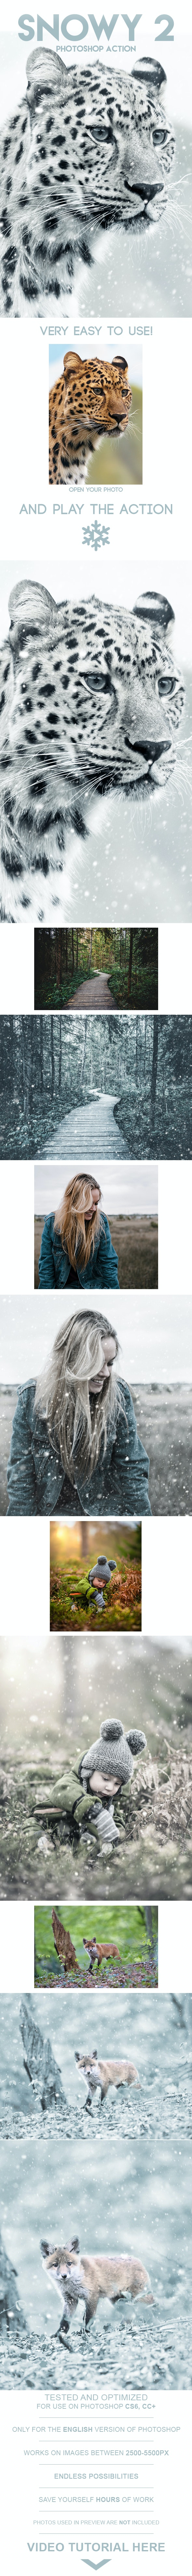 Snowy 2 Photoshop Action - Photo Effects Actions